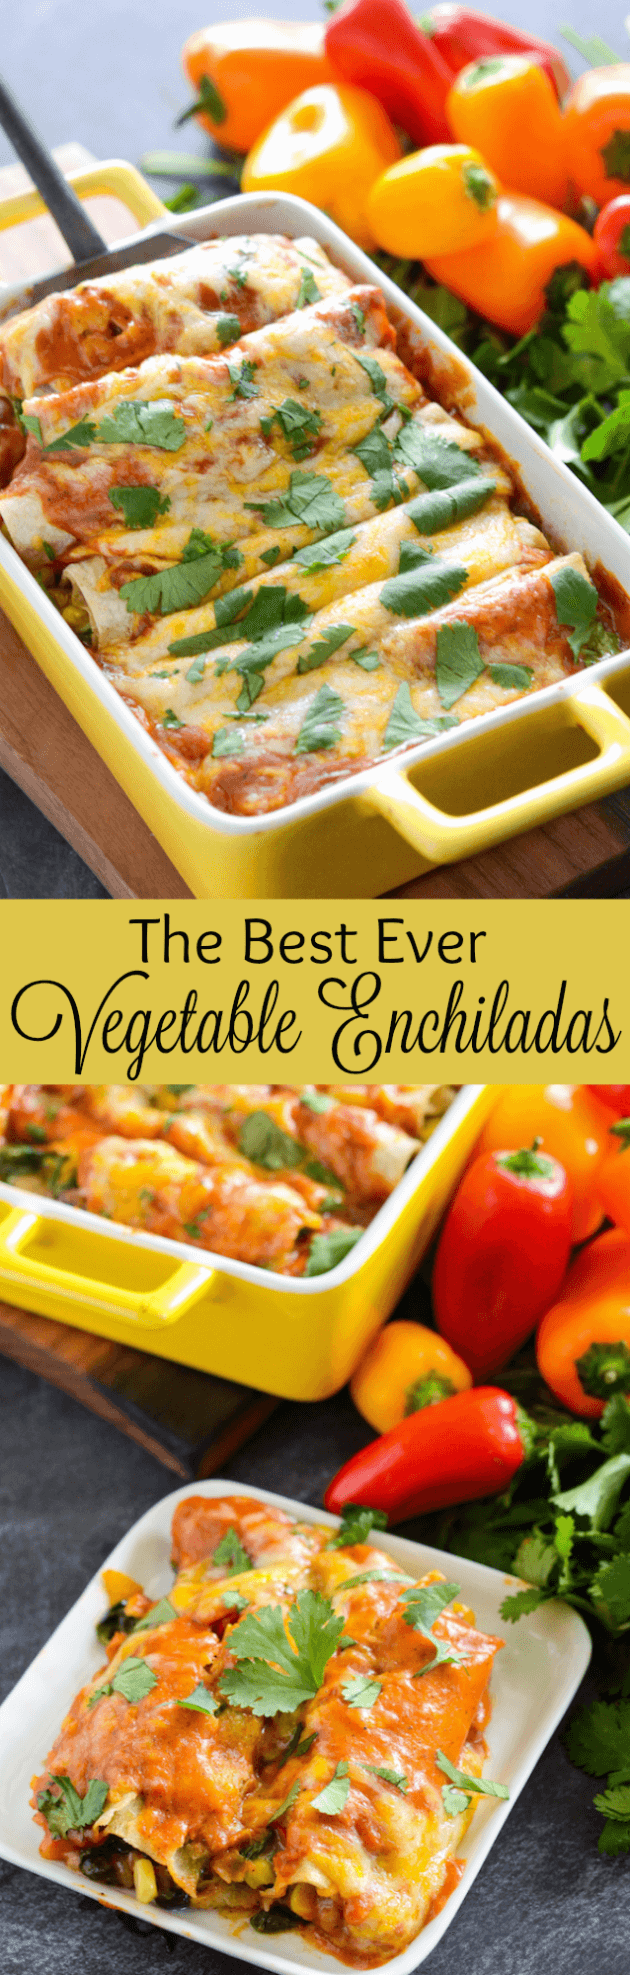 The Best Vegetable Enchiladas stuffed with spinach, corn, beans, sweet bell peppers and cheese!!